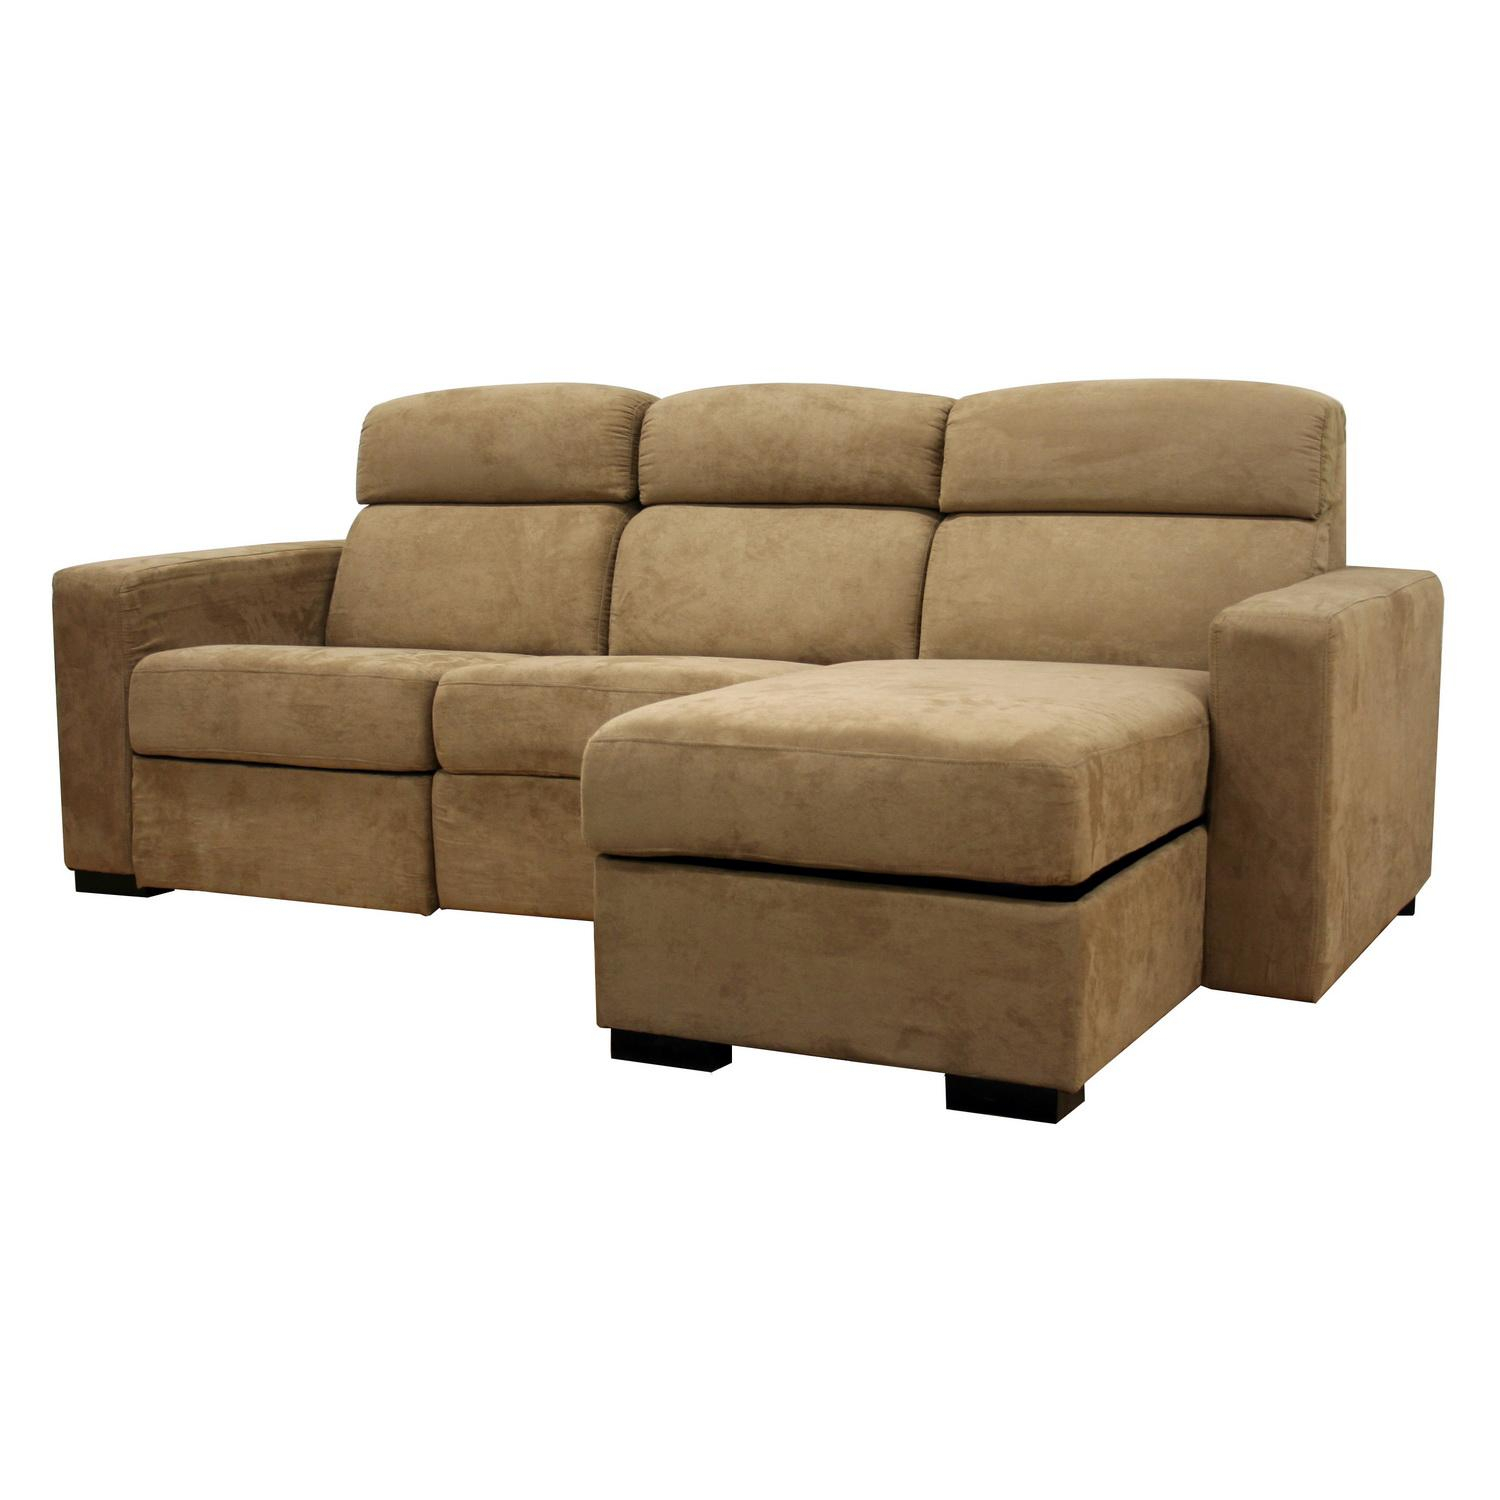 Holcomb Tan Microfiber Storage Chaise And Reclining With Copenhagen Reclining Sectional Sofas With Right Storage Chaise (View 6 of 15)